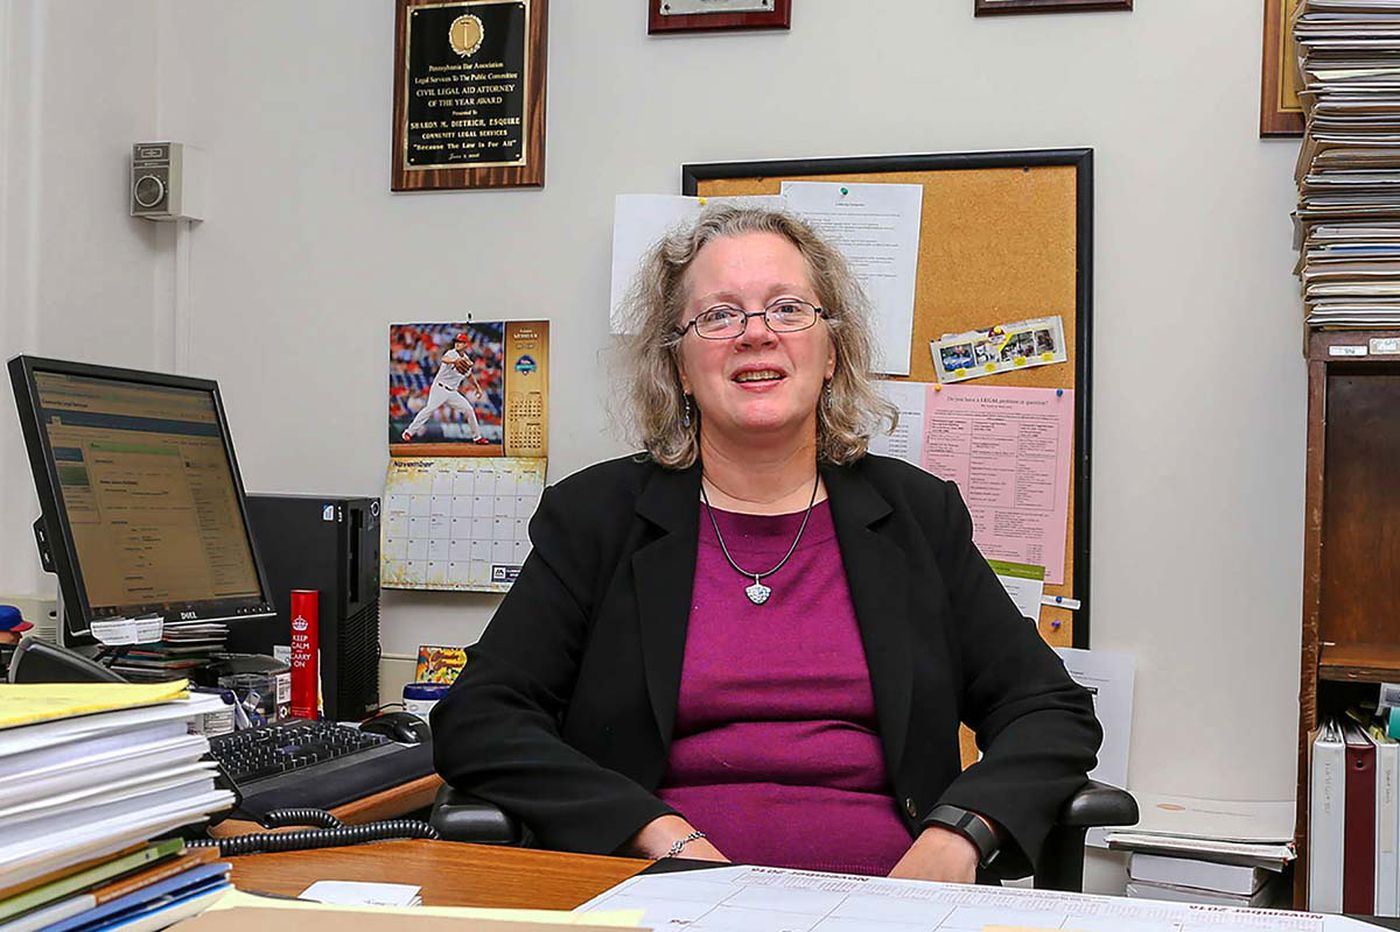 Legal advocate helps workers under shadow of criminal records